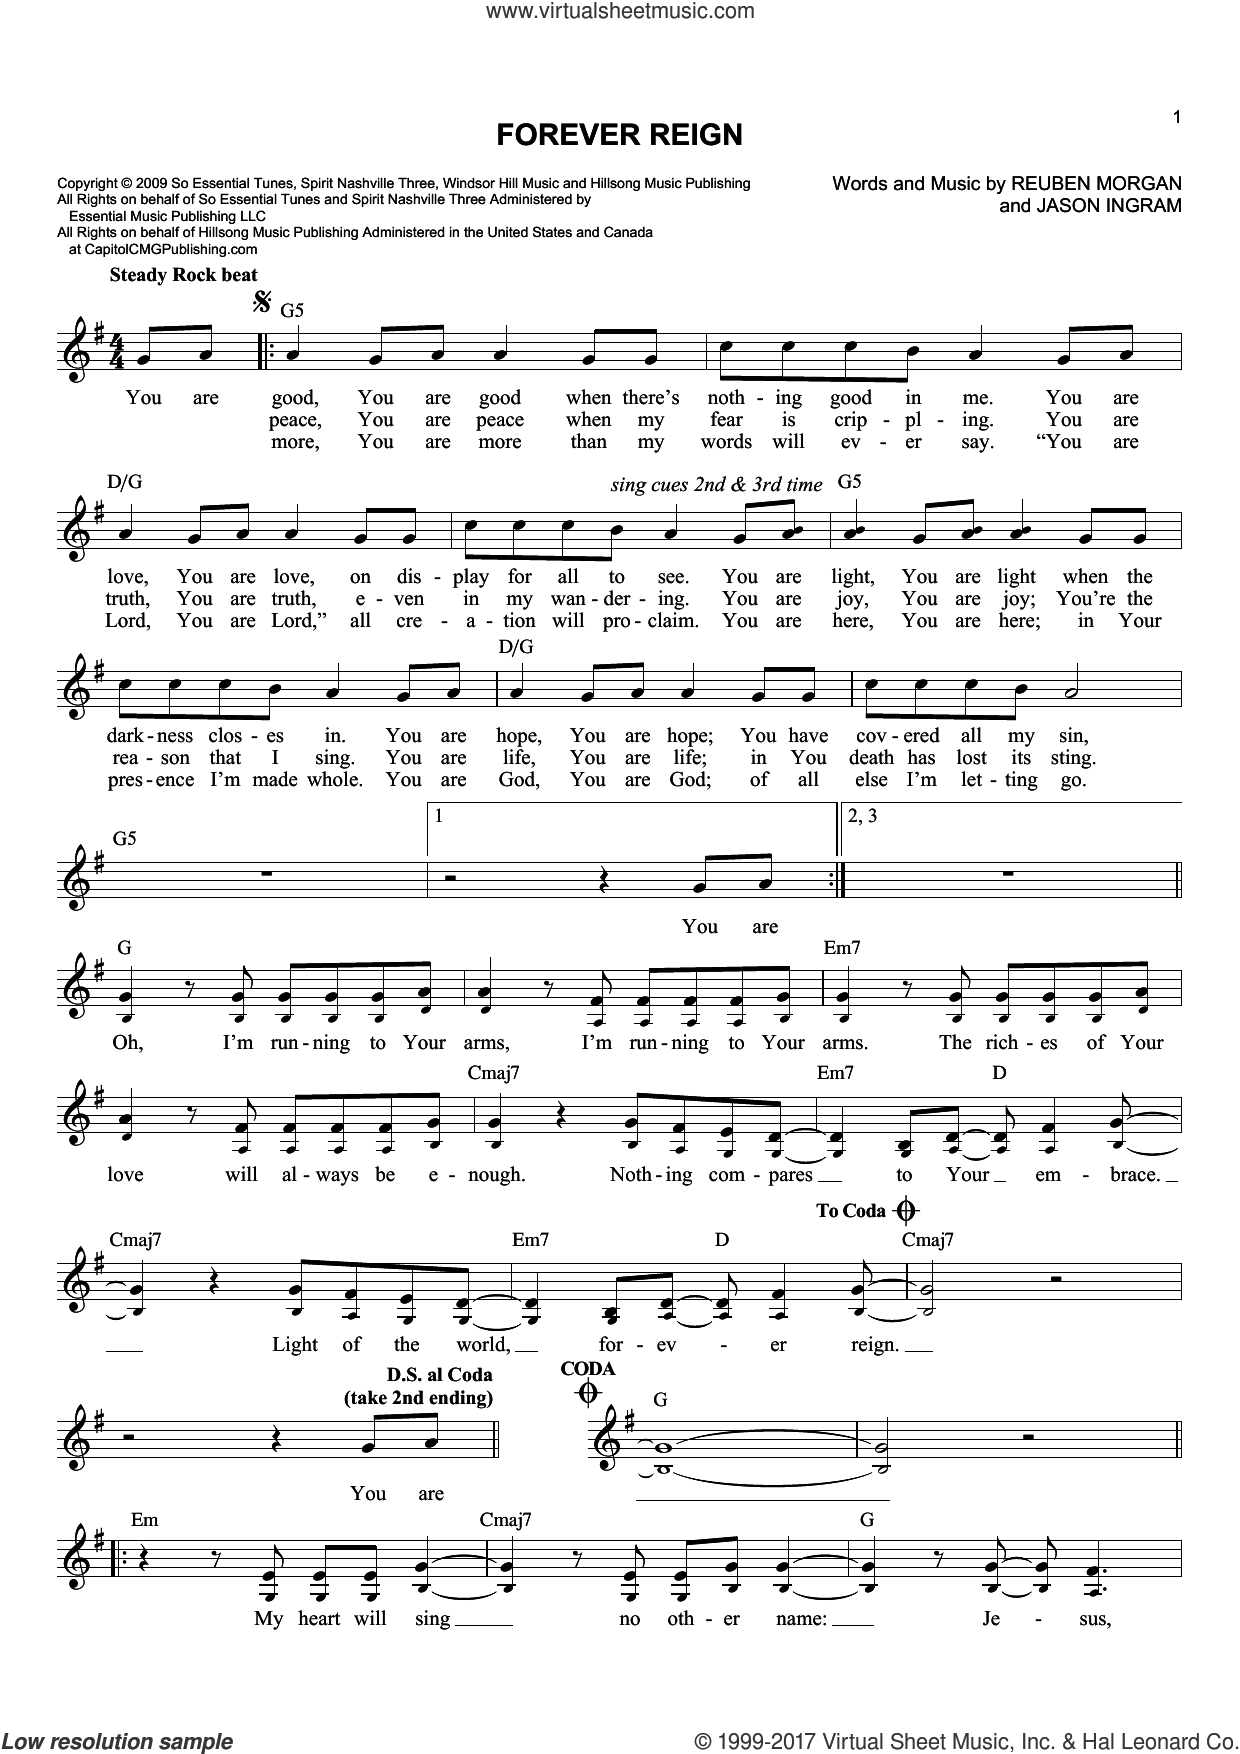 Forever Reign sheet music for voice and other instruments (fake book) by Jason Ingram and Reuben Morgan, intermediate skill level